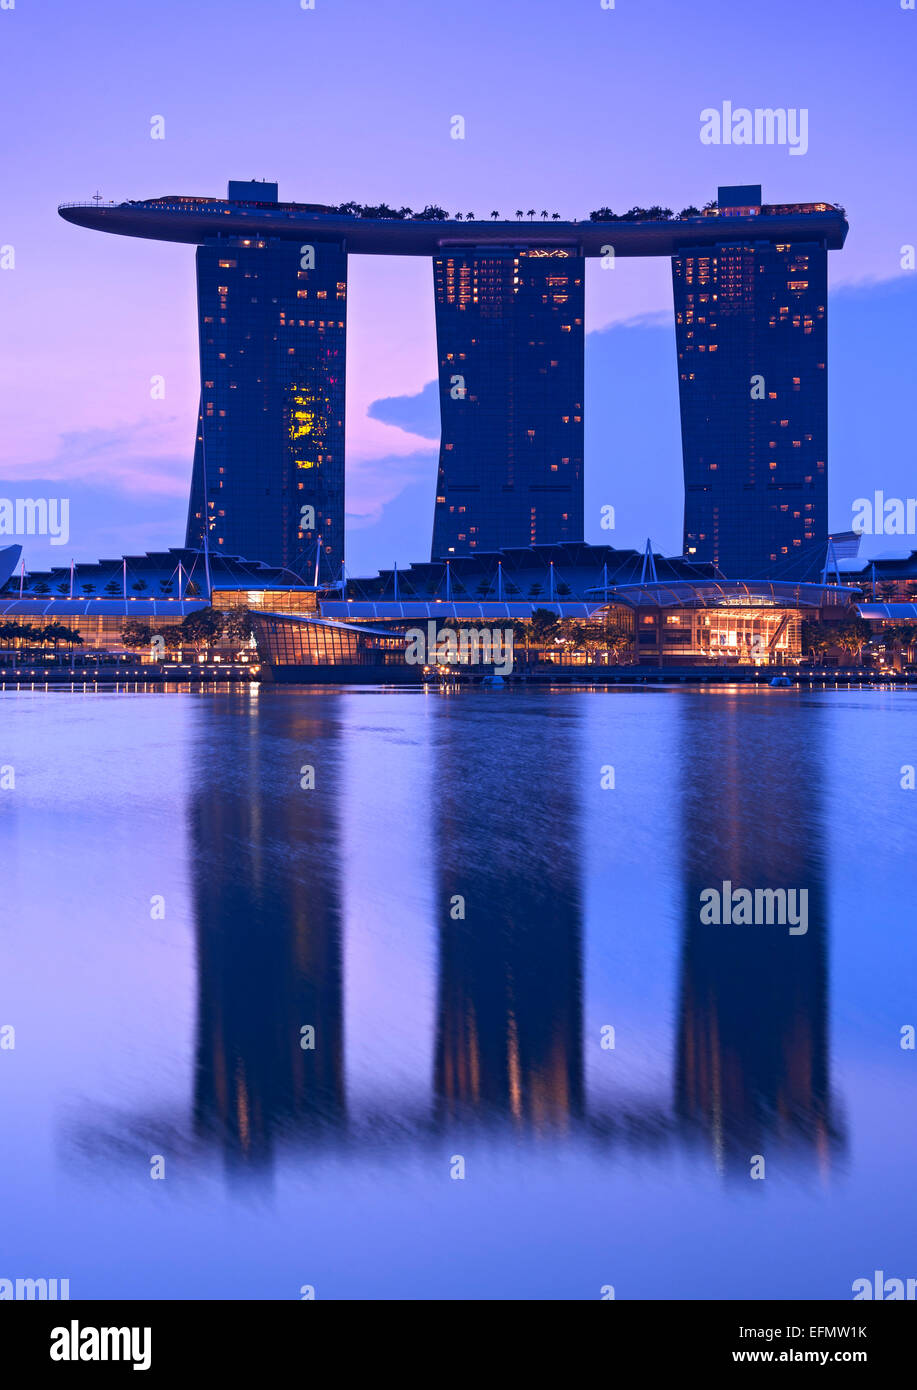 The Marina Bay Sands Hotel in Singapore at dawn. - Stock Image